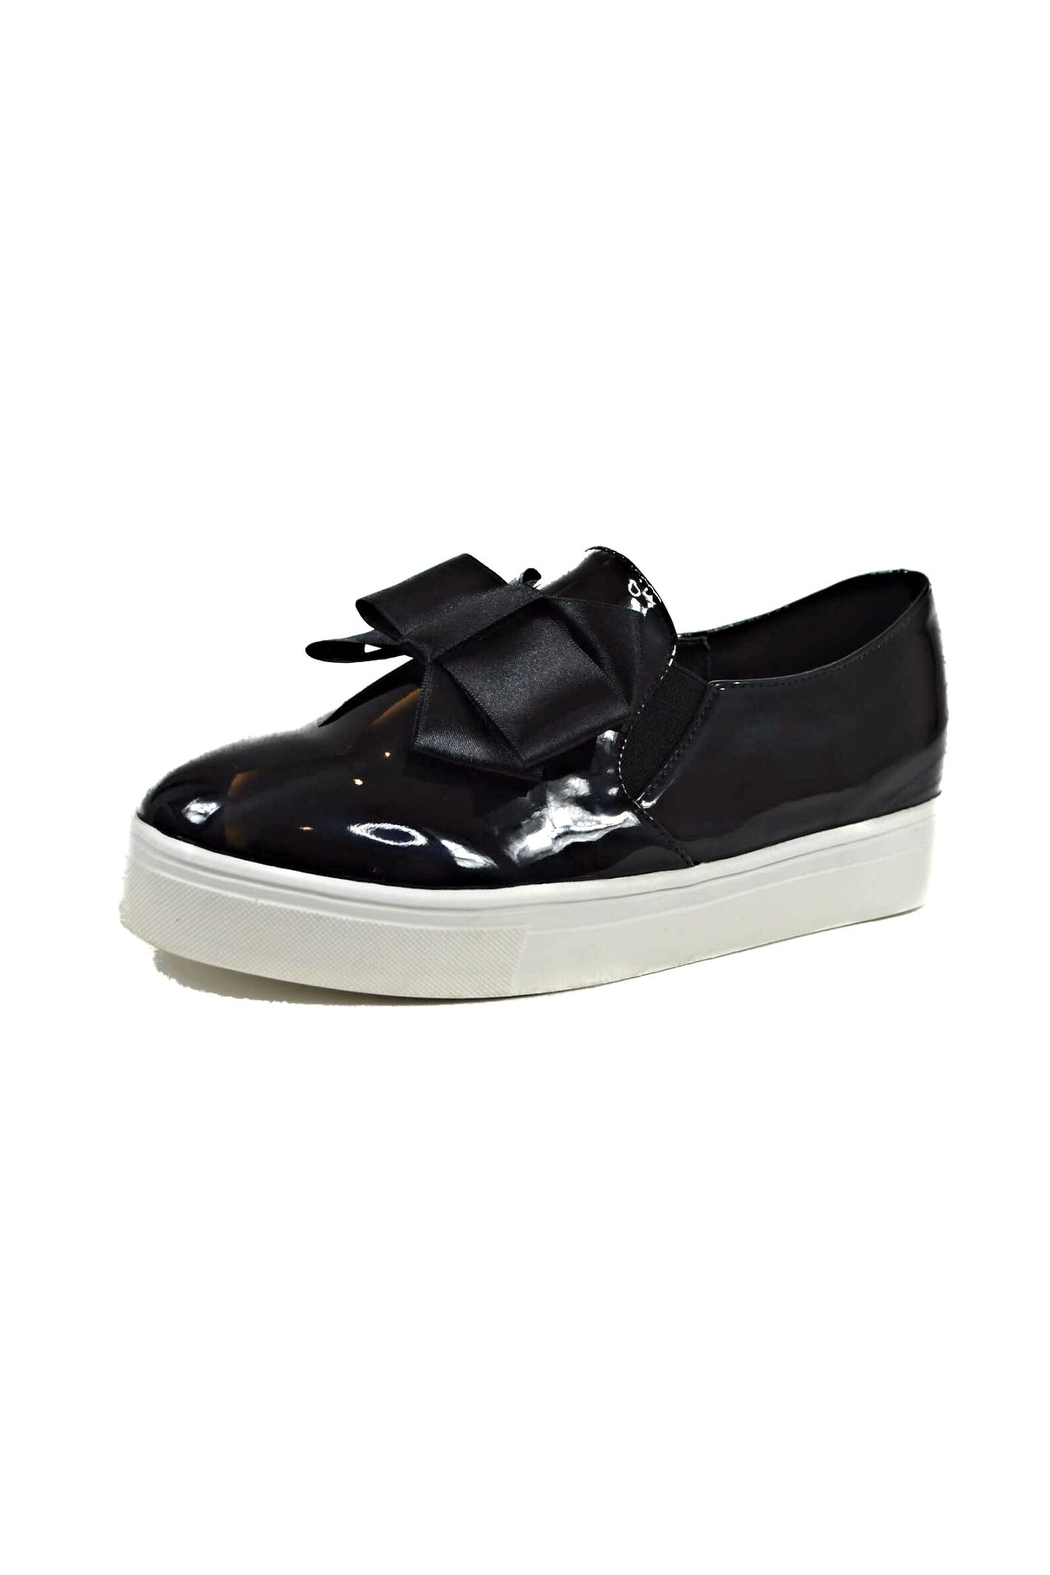 Ana Colina Boutique Black Bow Sneakers - Main Image